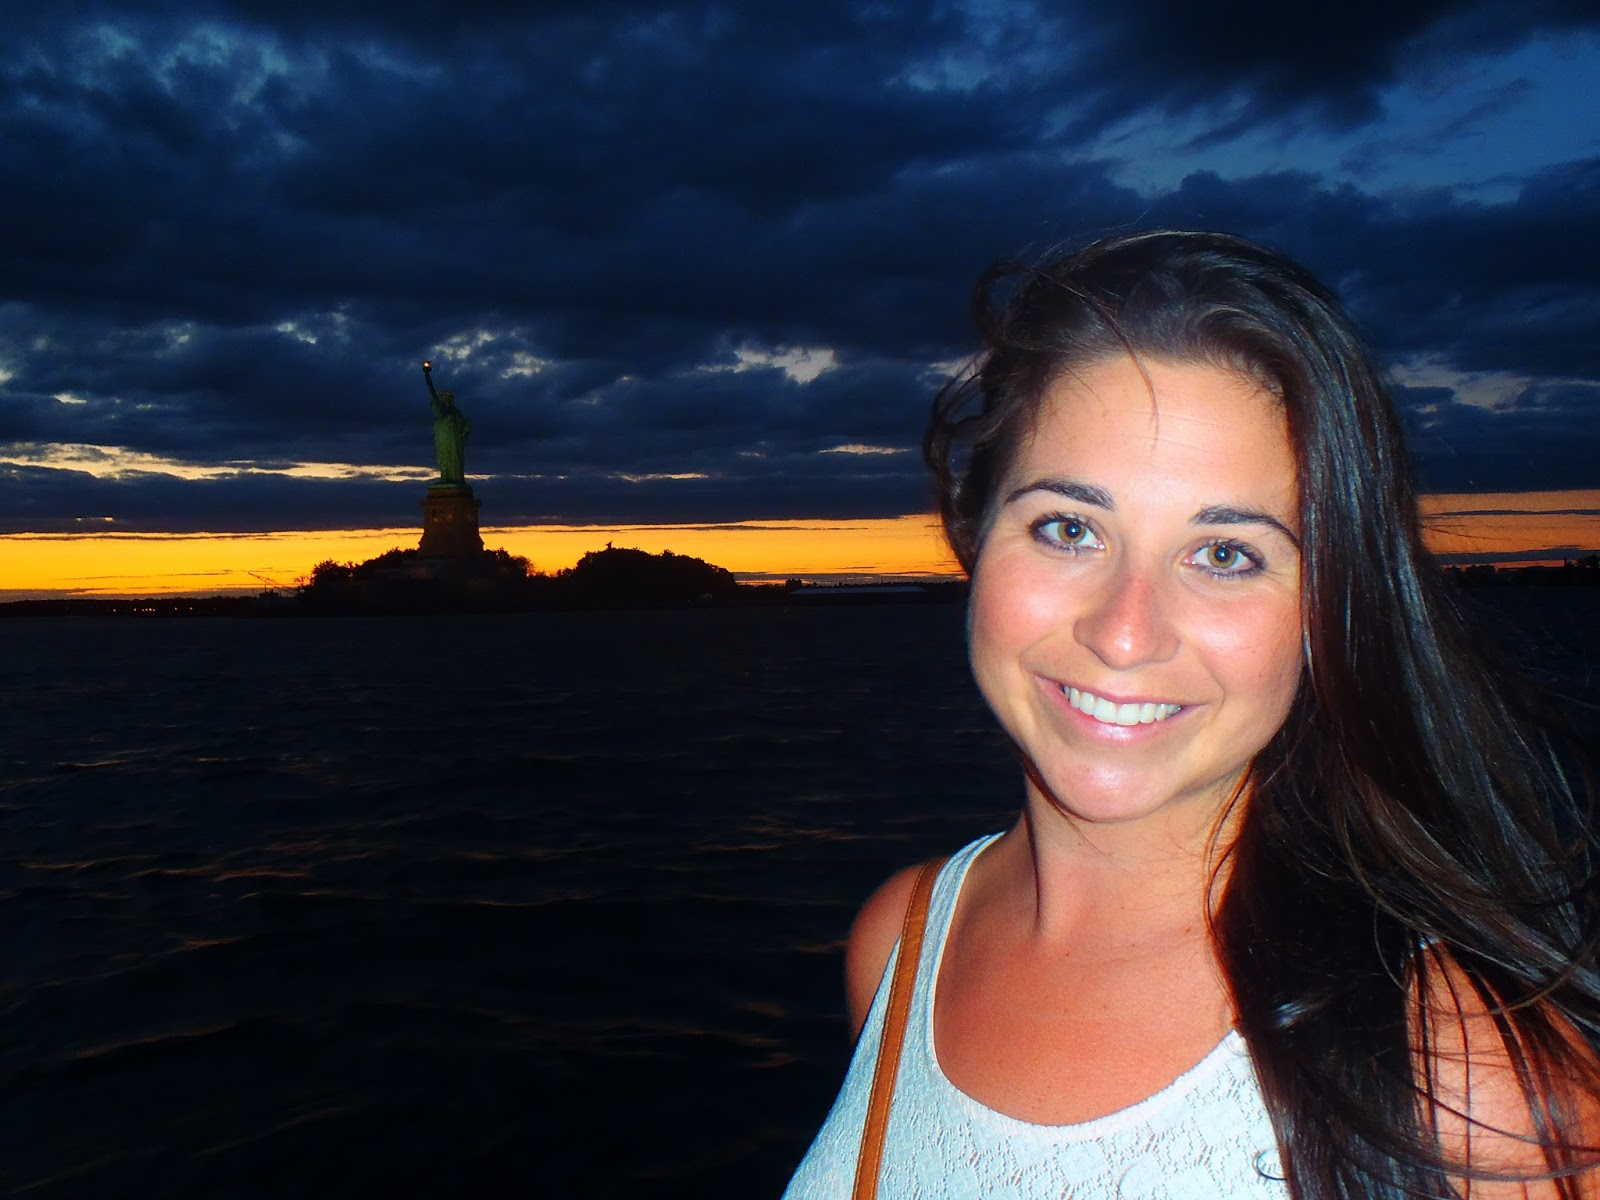 Girl with Statue of Liberty and Hudson River